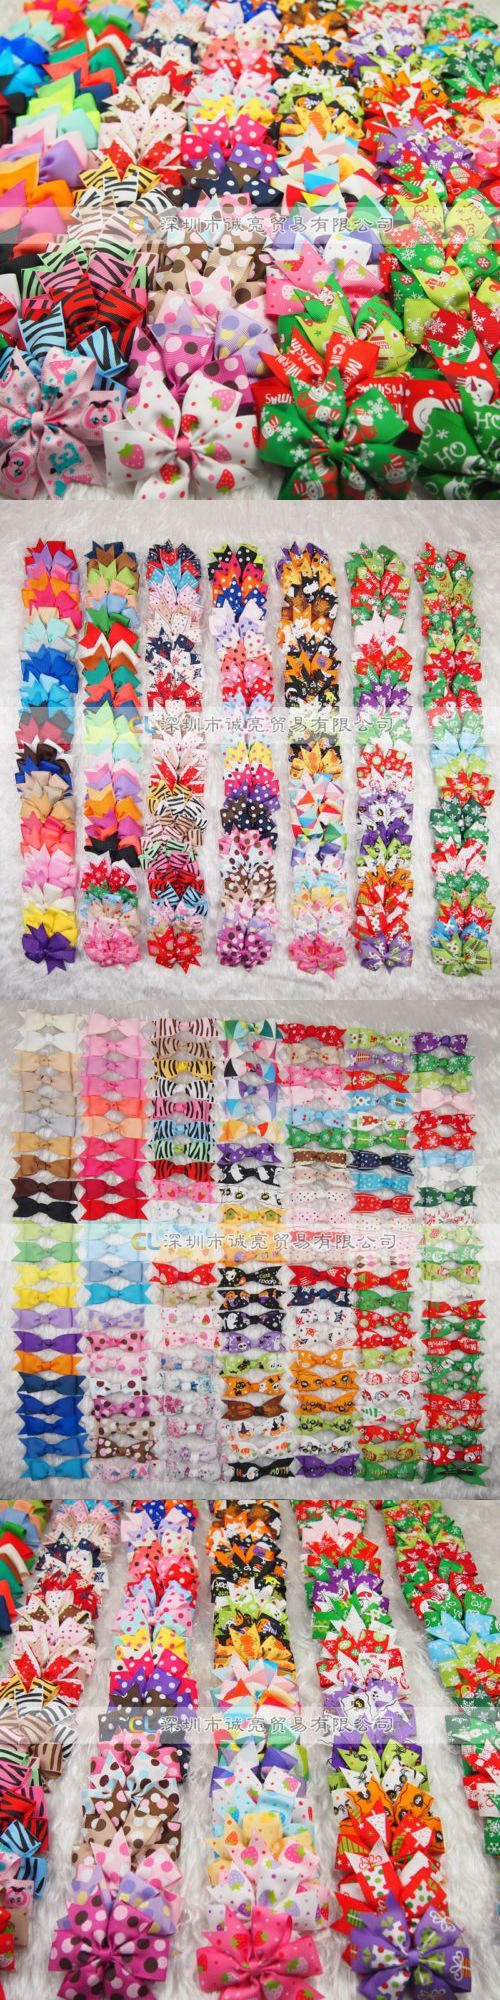 Hair accessories for babies ebay - Hair Accessories 18786 Wholesale Colorful Girl Baby Toddler Kids Boutique Hair Bows Grosgrain Ribbon